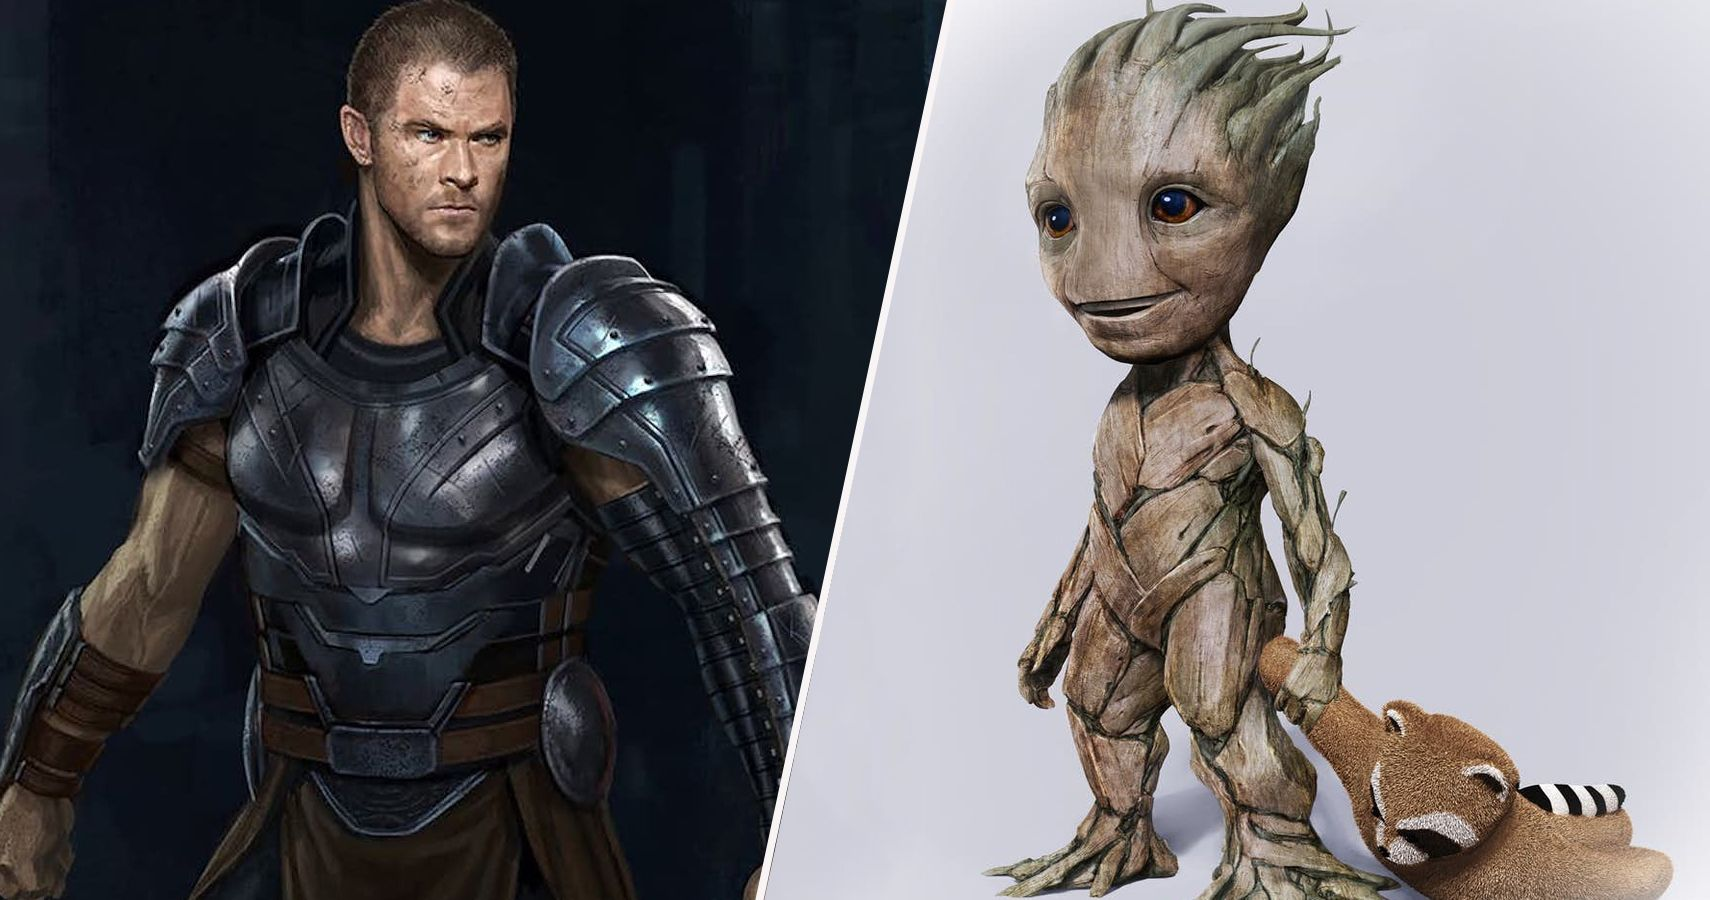 29 Unused Marvel Concept Art Designs That Would've Changed ...